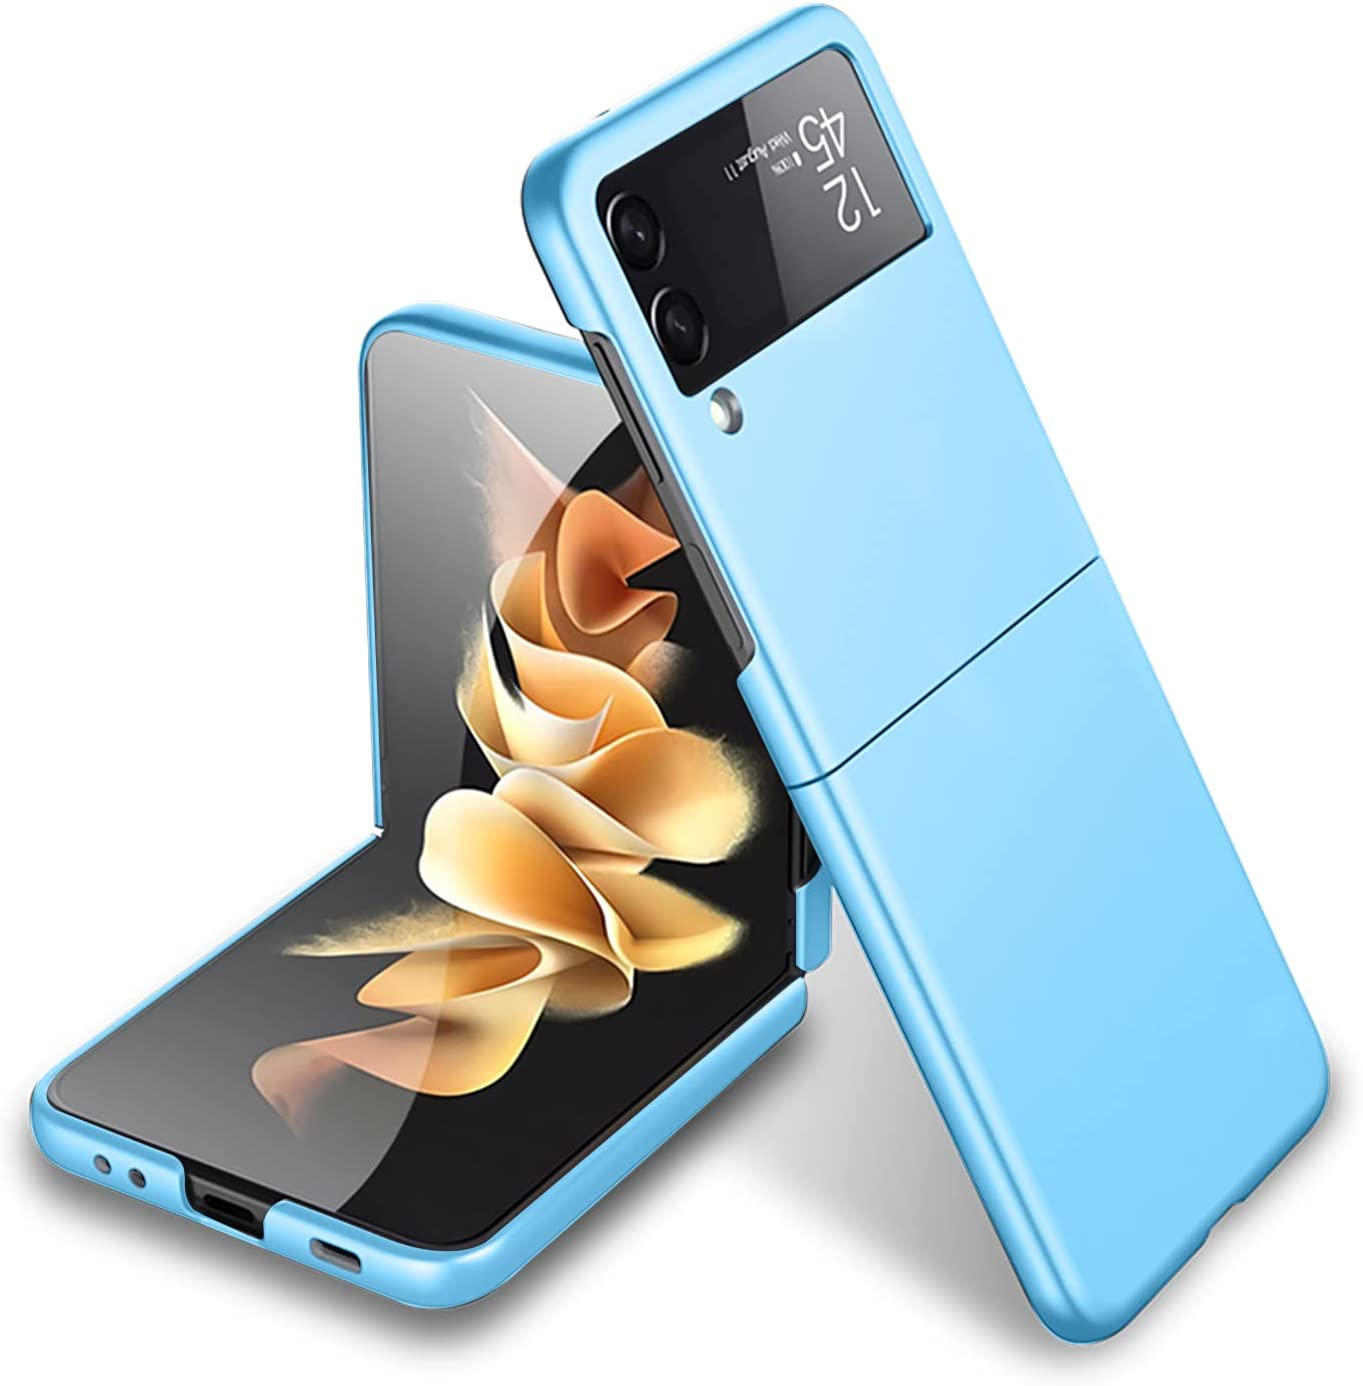 MZELQ Compatible with Samsung Galaxy Z Flip 3 5G Case Shockproof PC Hard Cover for Girls Women -Blue